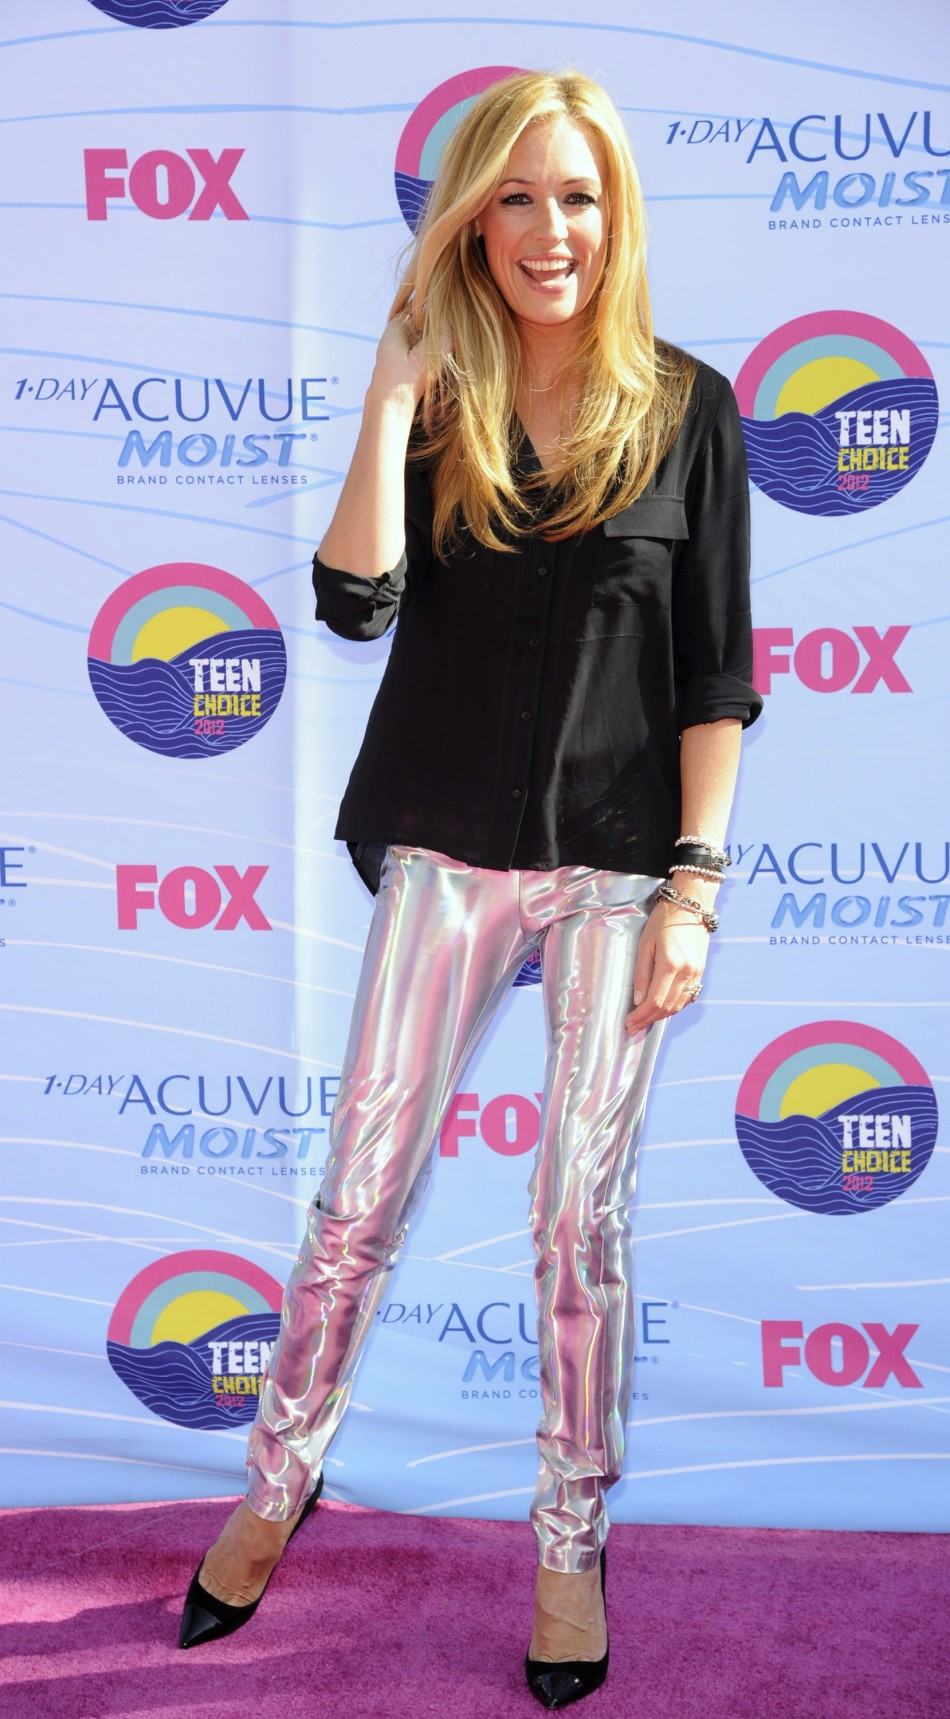 TV presenter Cat Deeley arrives for the 2012 Teen Choice Awards in Los Angeles